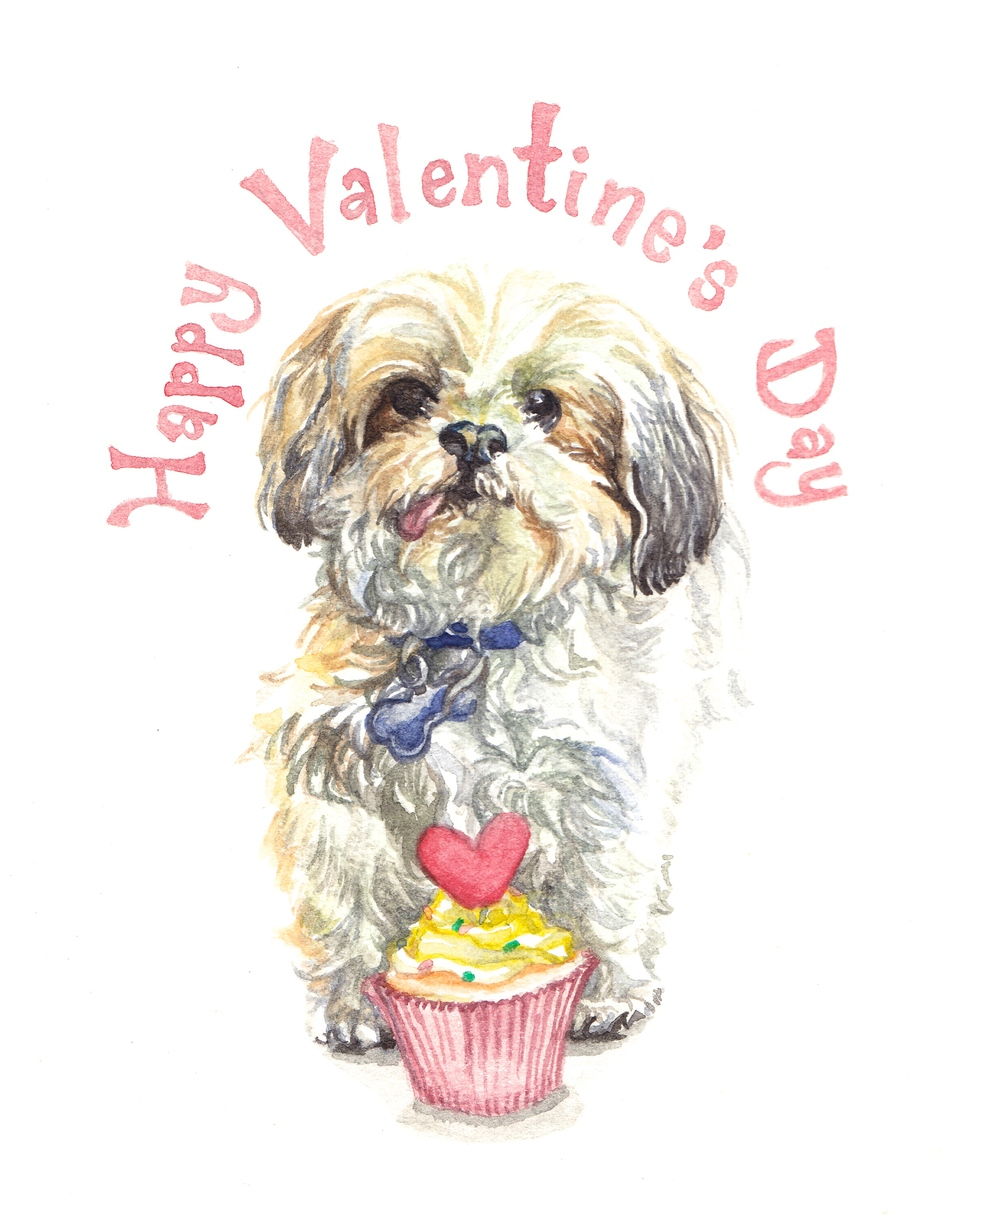 Happy Valentine's Day from Bam Bam, a sweet Shih Tzu from   Lucky Dog Animal Rescue .